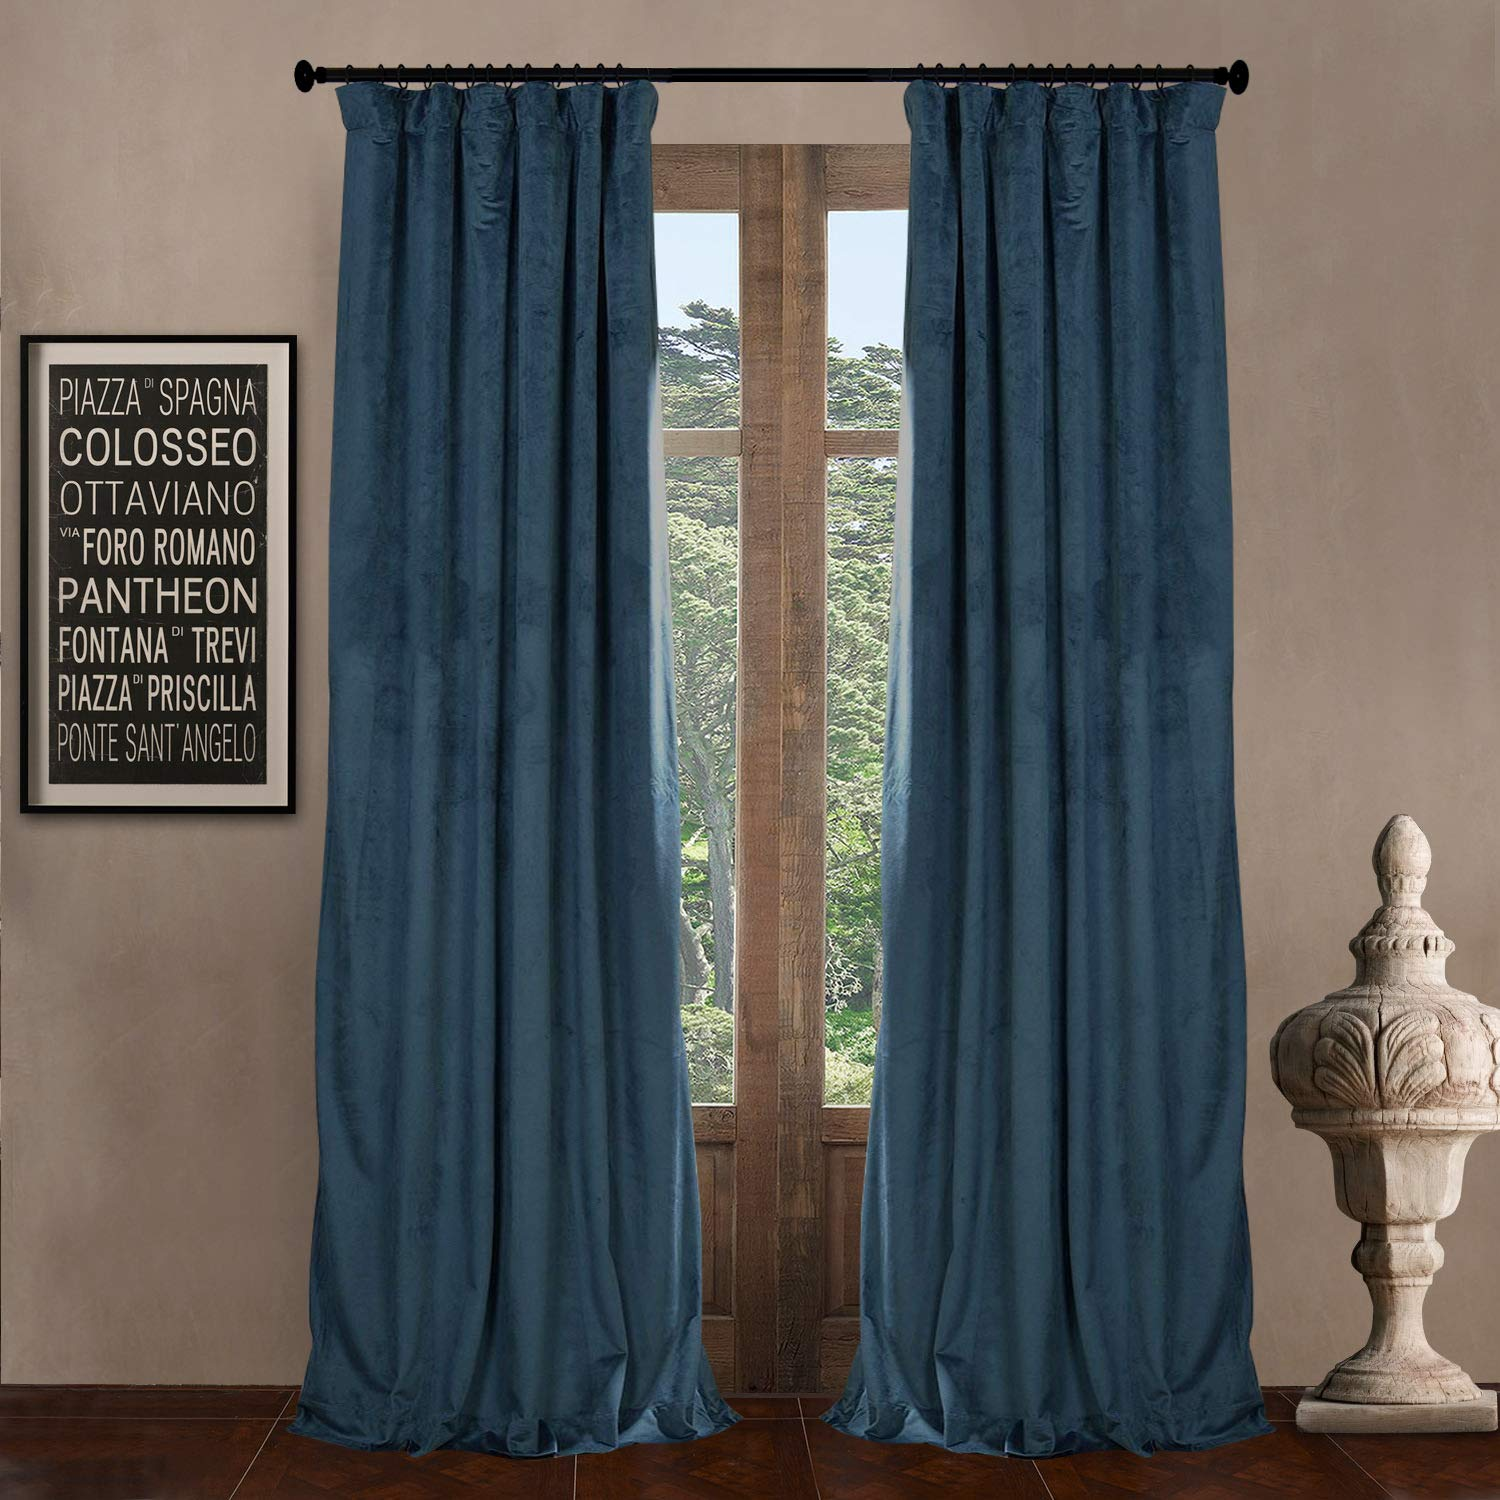 Everglade Teal 100  W x 102  L 100  W x 102  L (set of 2 Panels) Pinch Pleat 90% Beige Lining Blackout Velvet Solid Curtain Thermal Insulated Patio Door Curtain Panel Drape For Traverse Rod and Track, Ivory Curtain